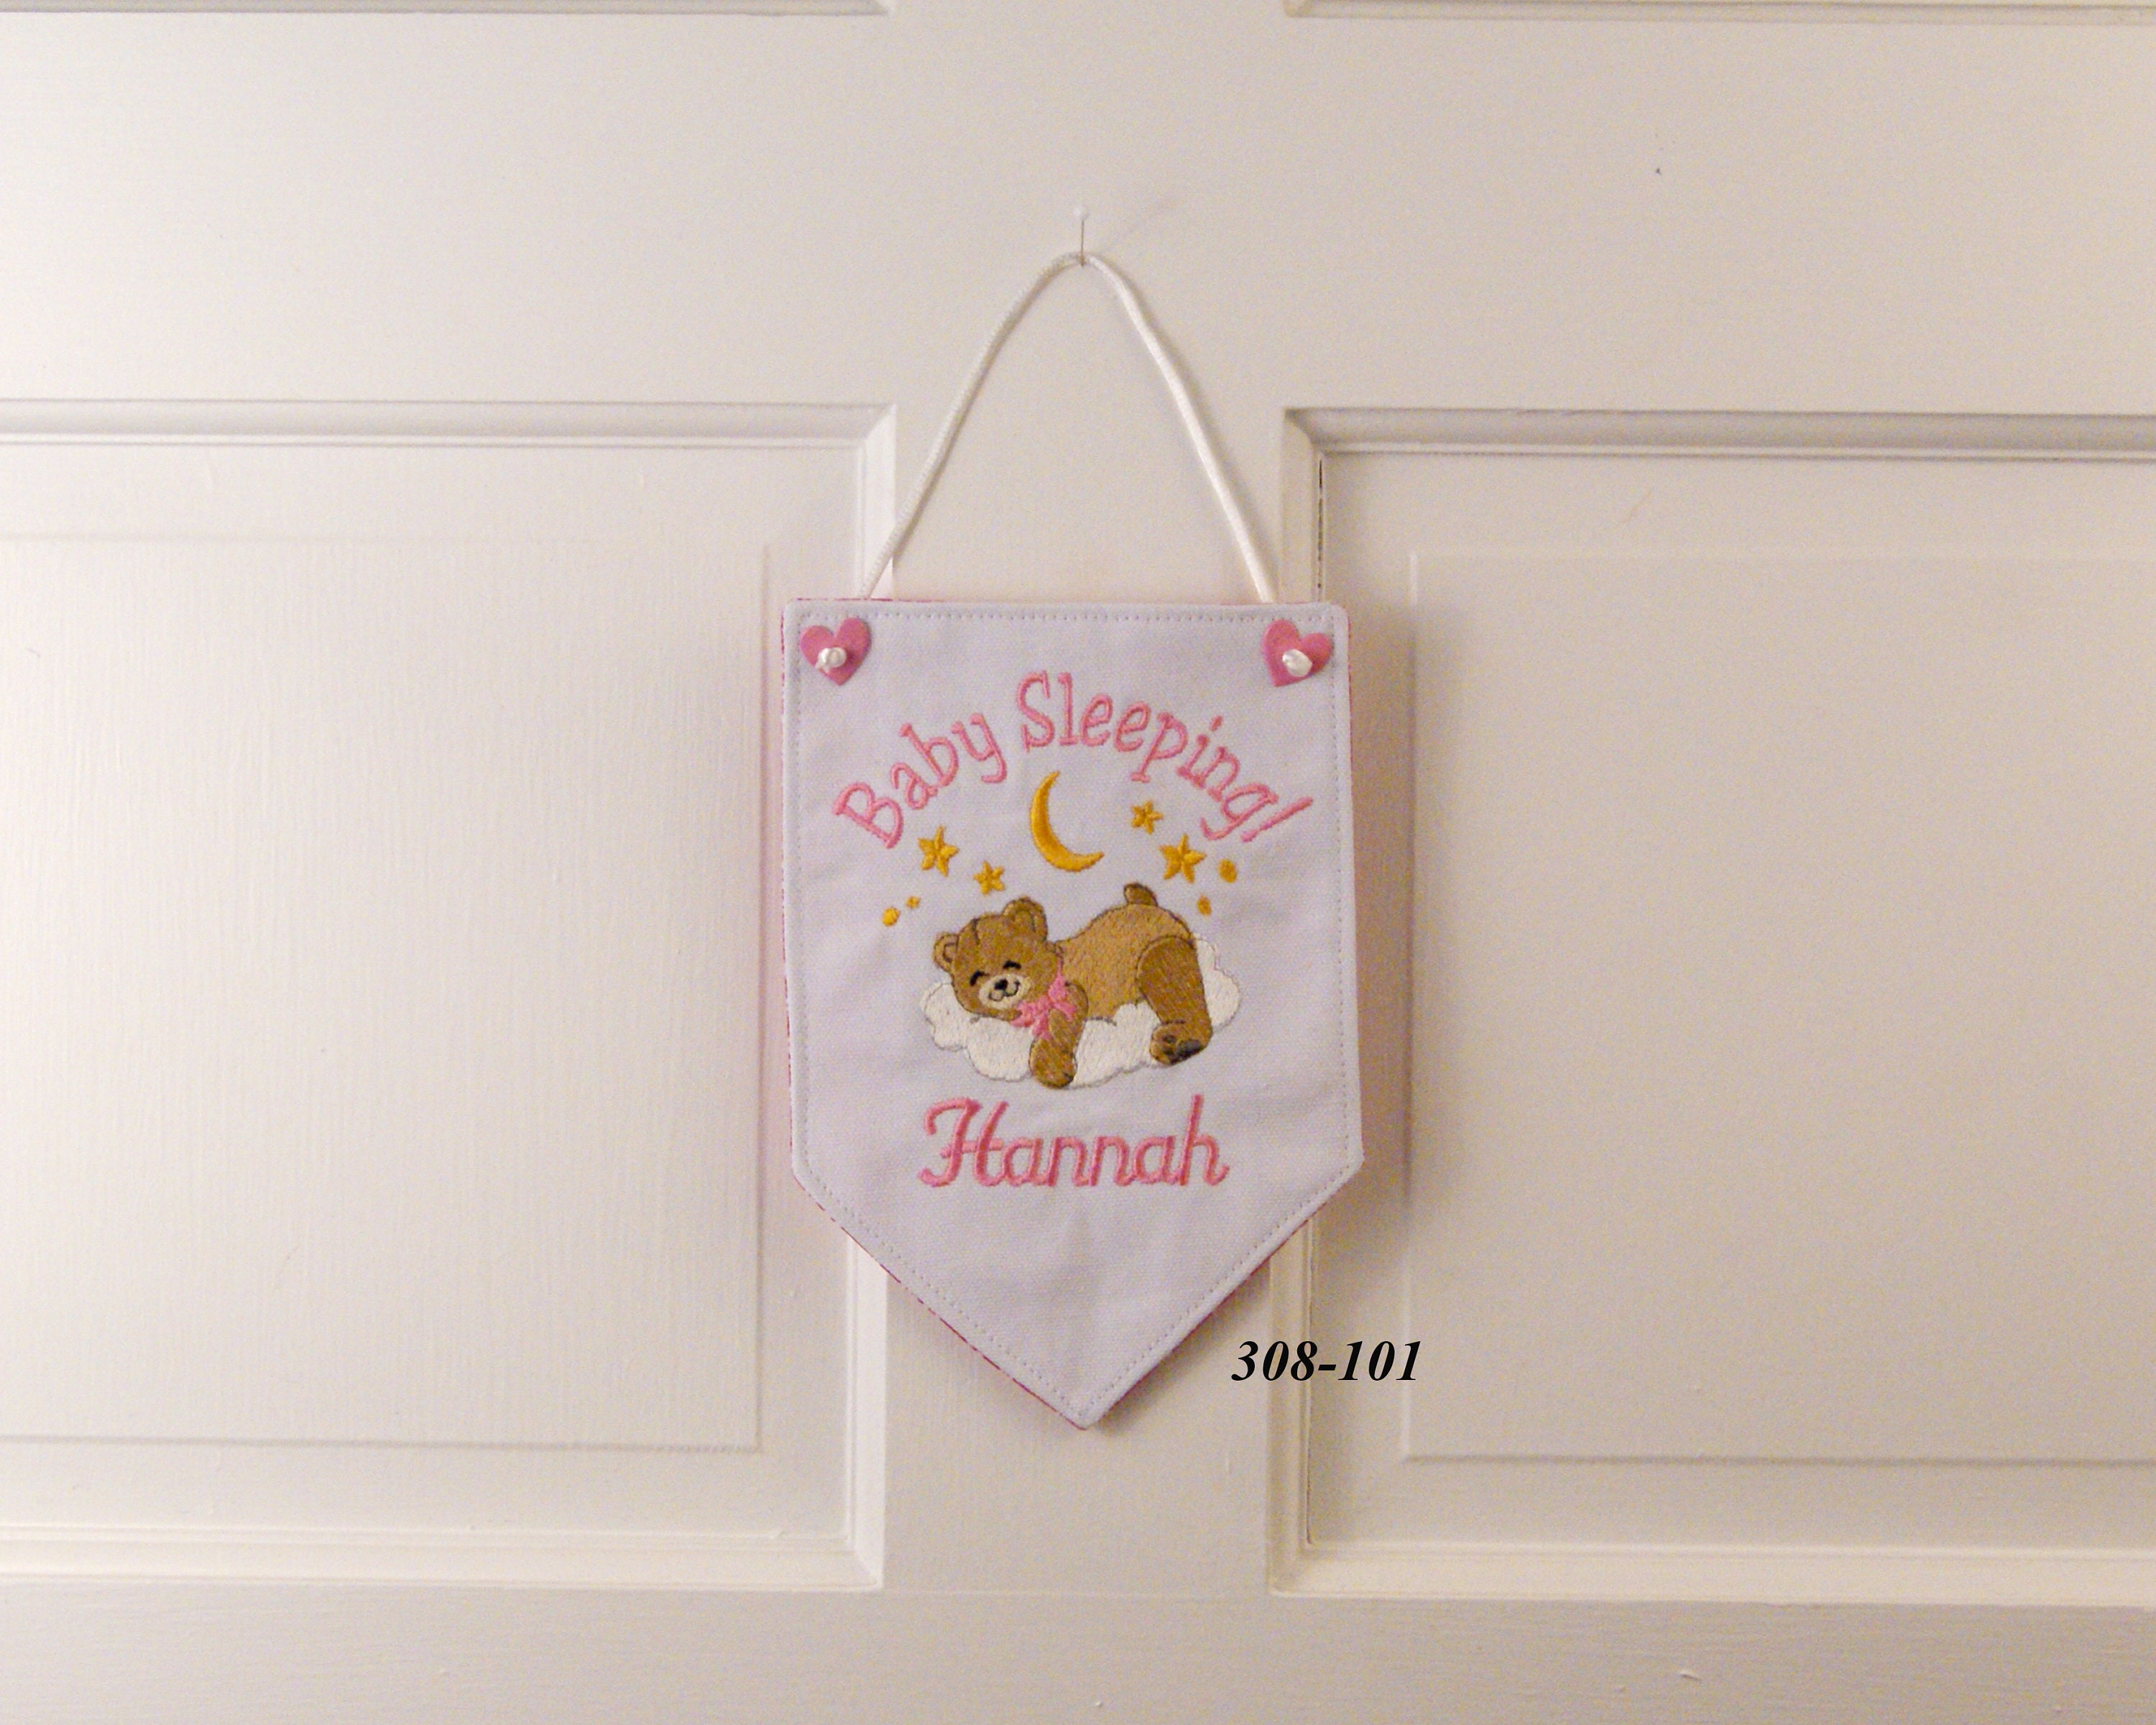 Baby Sleeping Banner Baby Banner Baby Wallhanging Baby Decor Baby Shower Gift Baby Bear Baby Girl Gift Baby Boy Gift Baby Gift